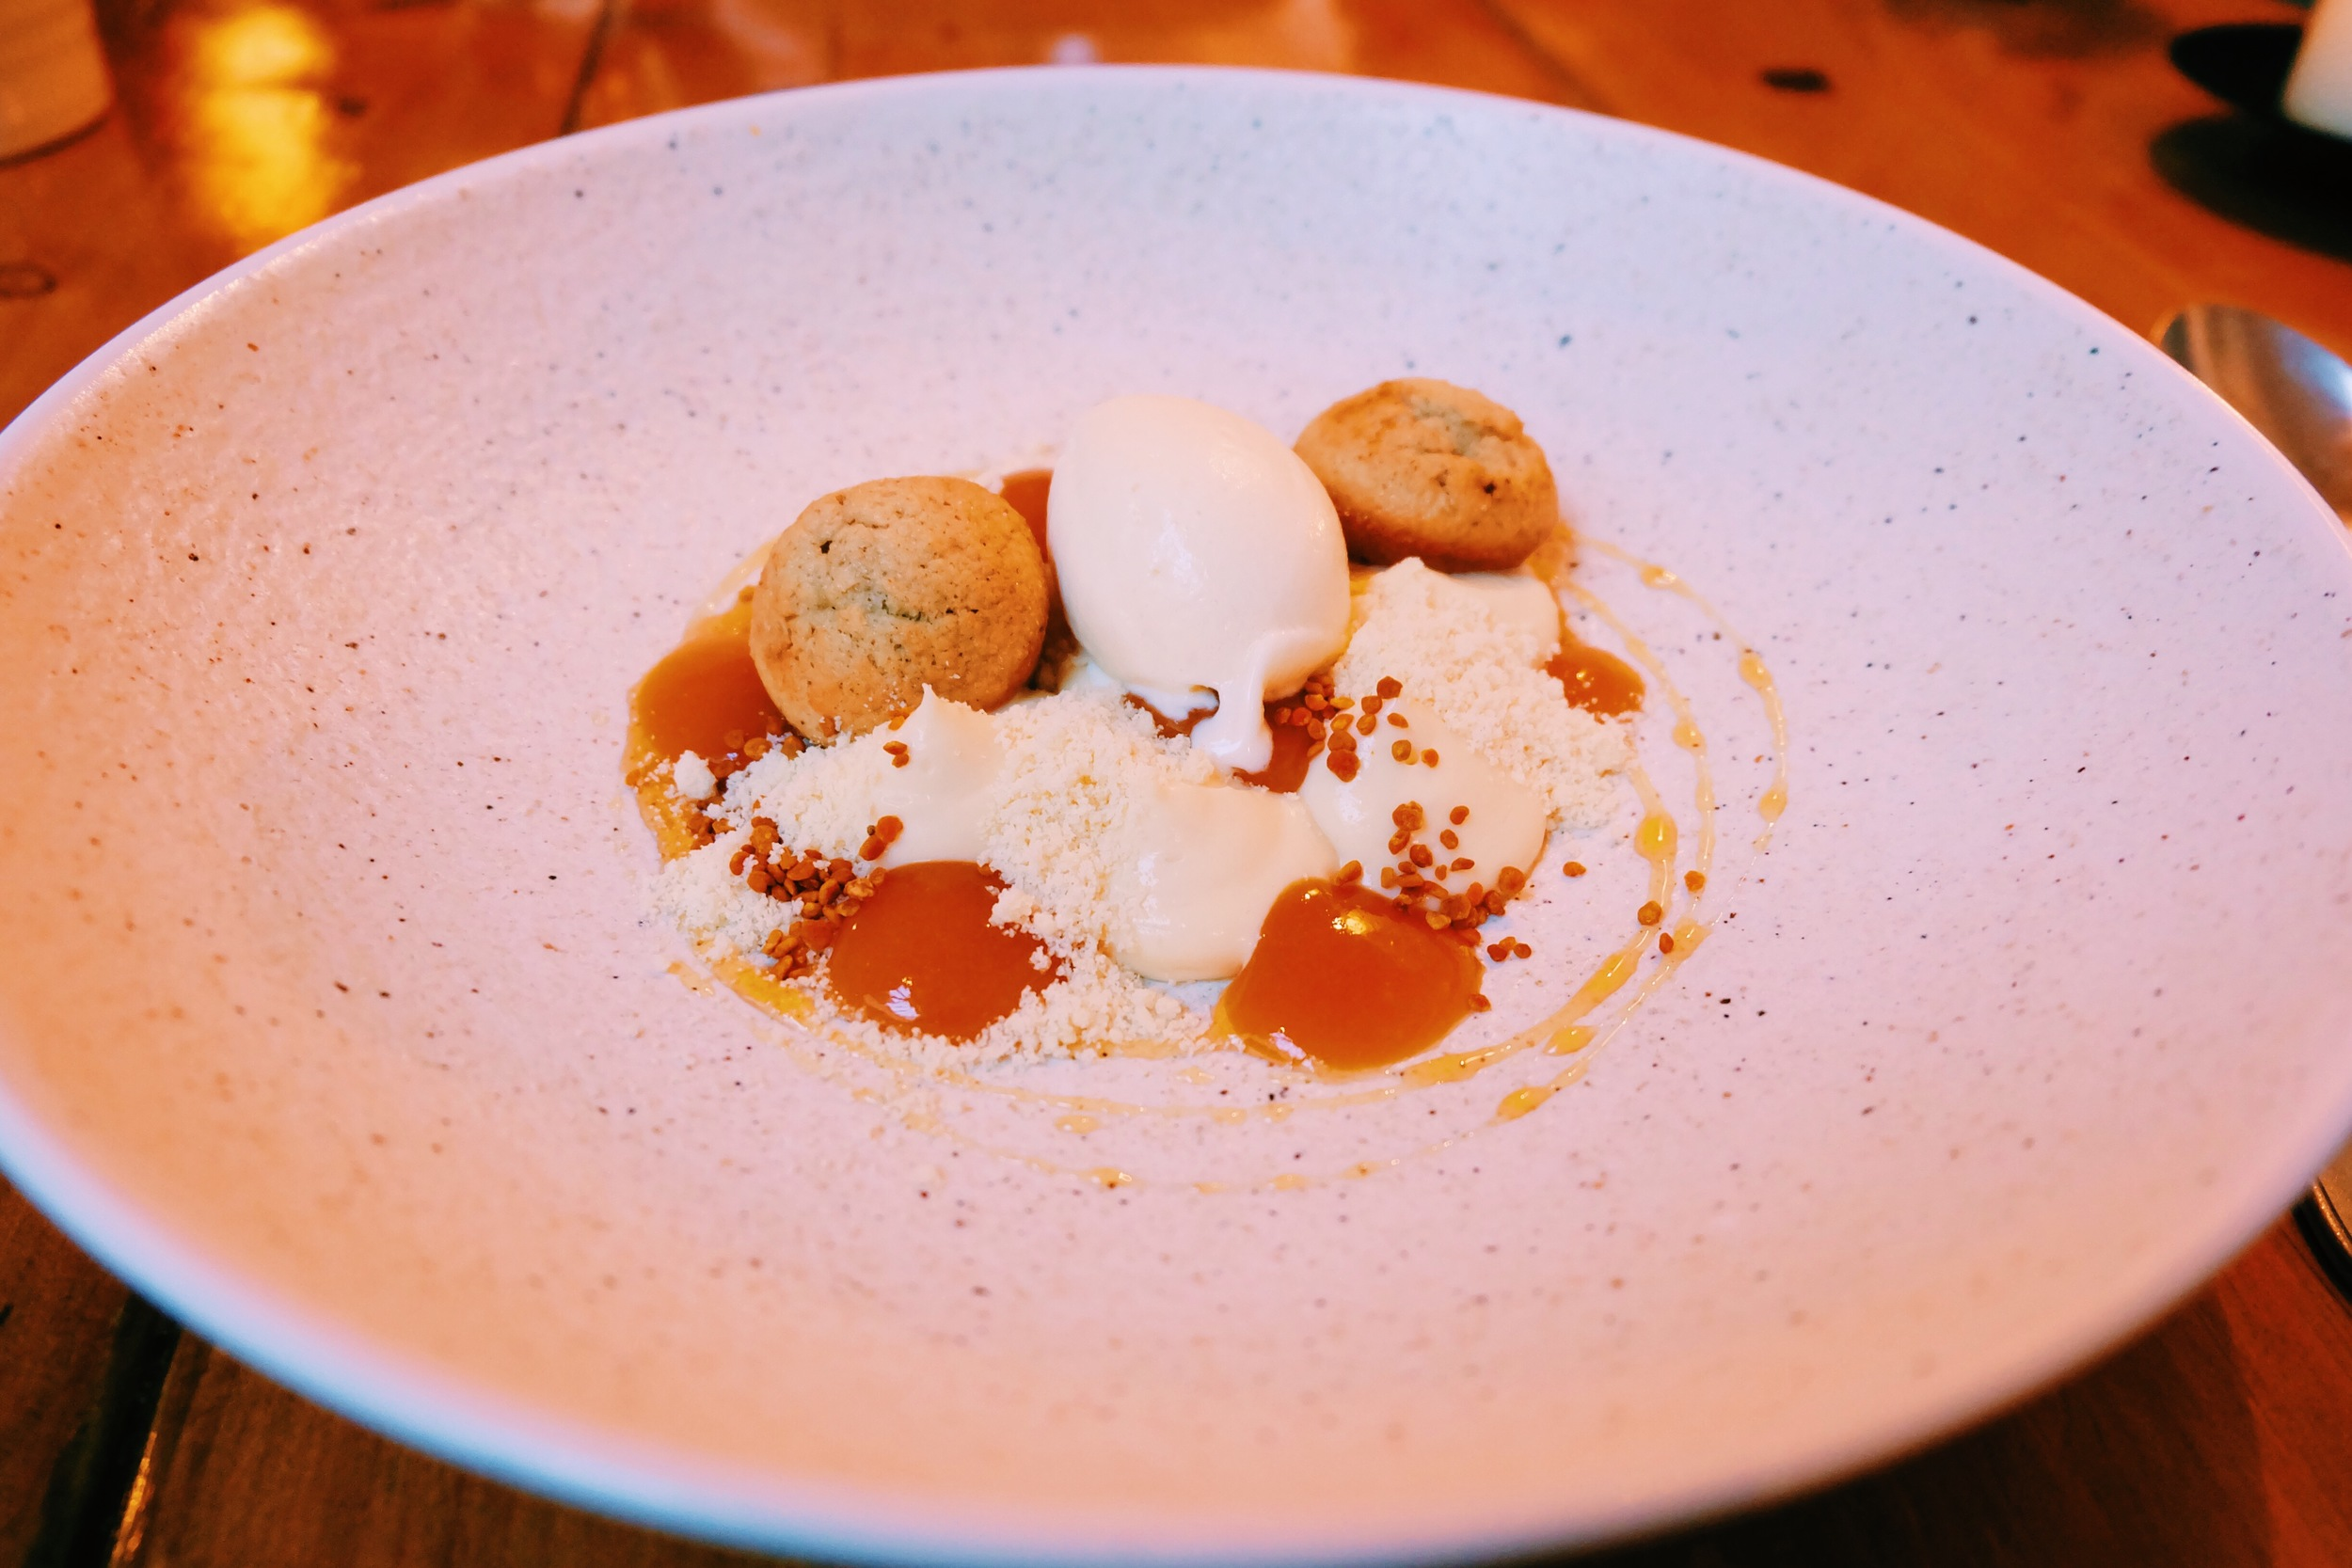 Dessert : Honey mousse with buttermilk, apricot and pollen (INCREDIBLE!)